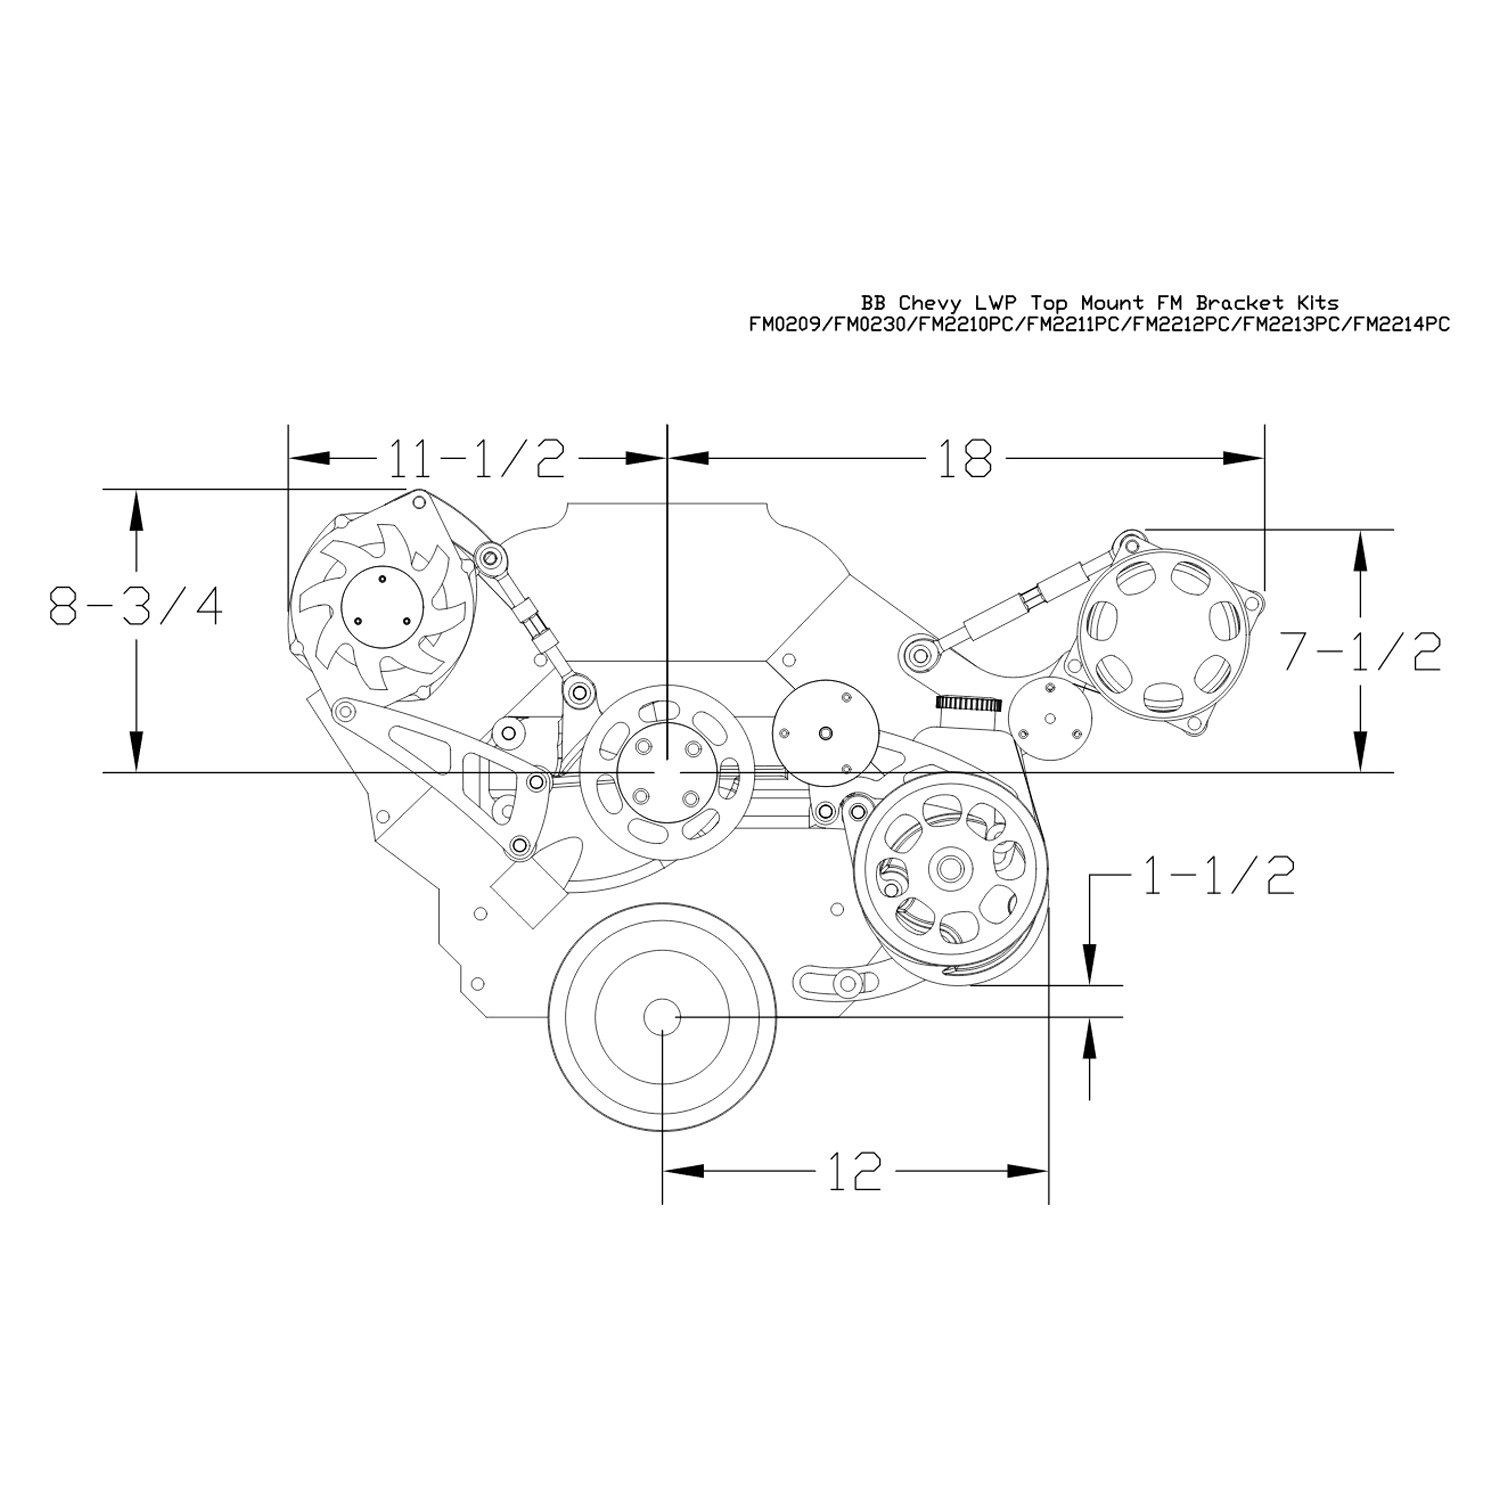 Billet Specialties Alternator Wiring Diagram Free Diagrams Volvo 120c Ket Kit